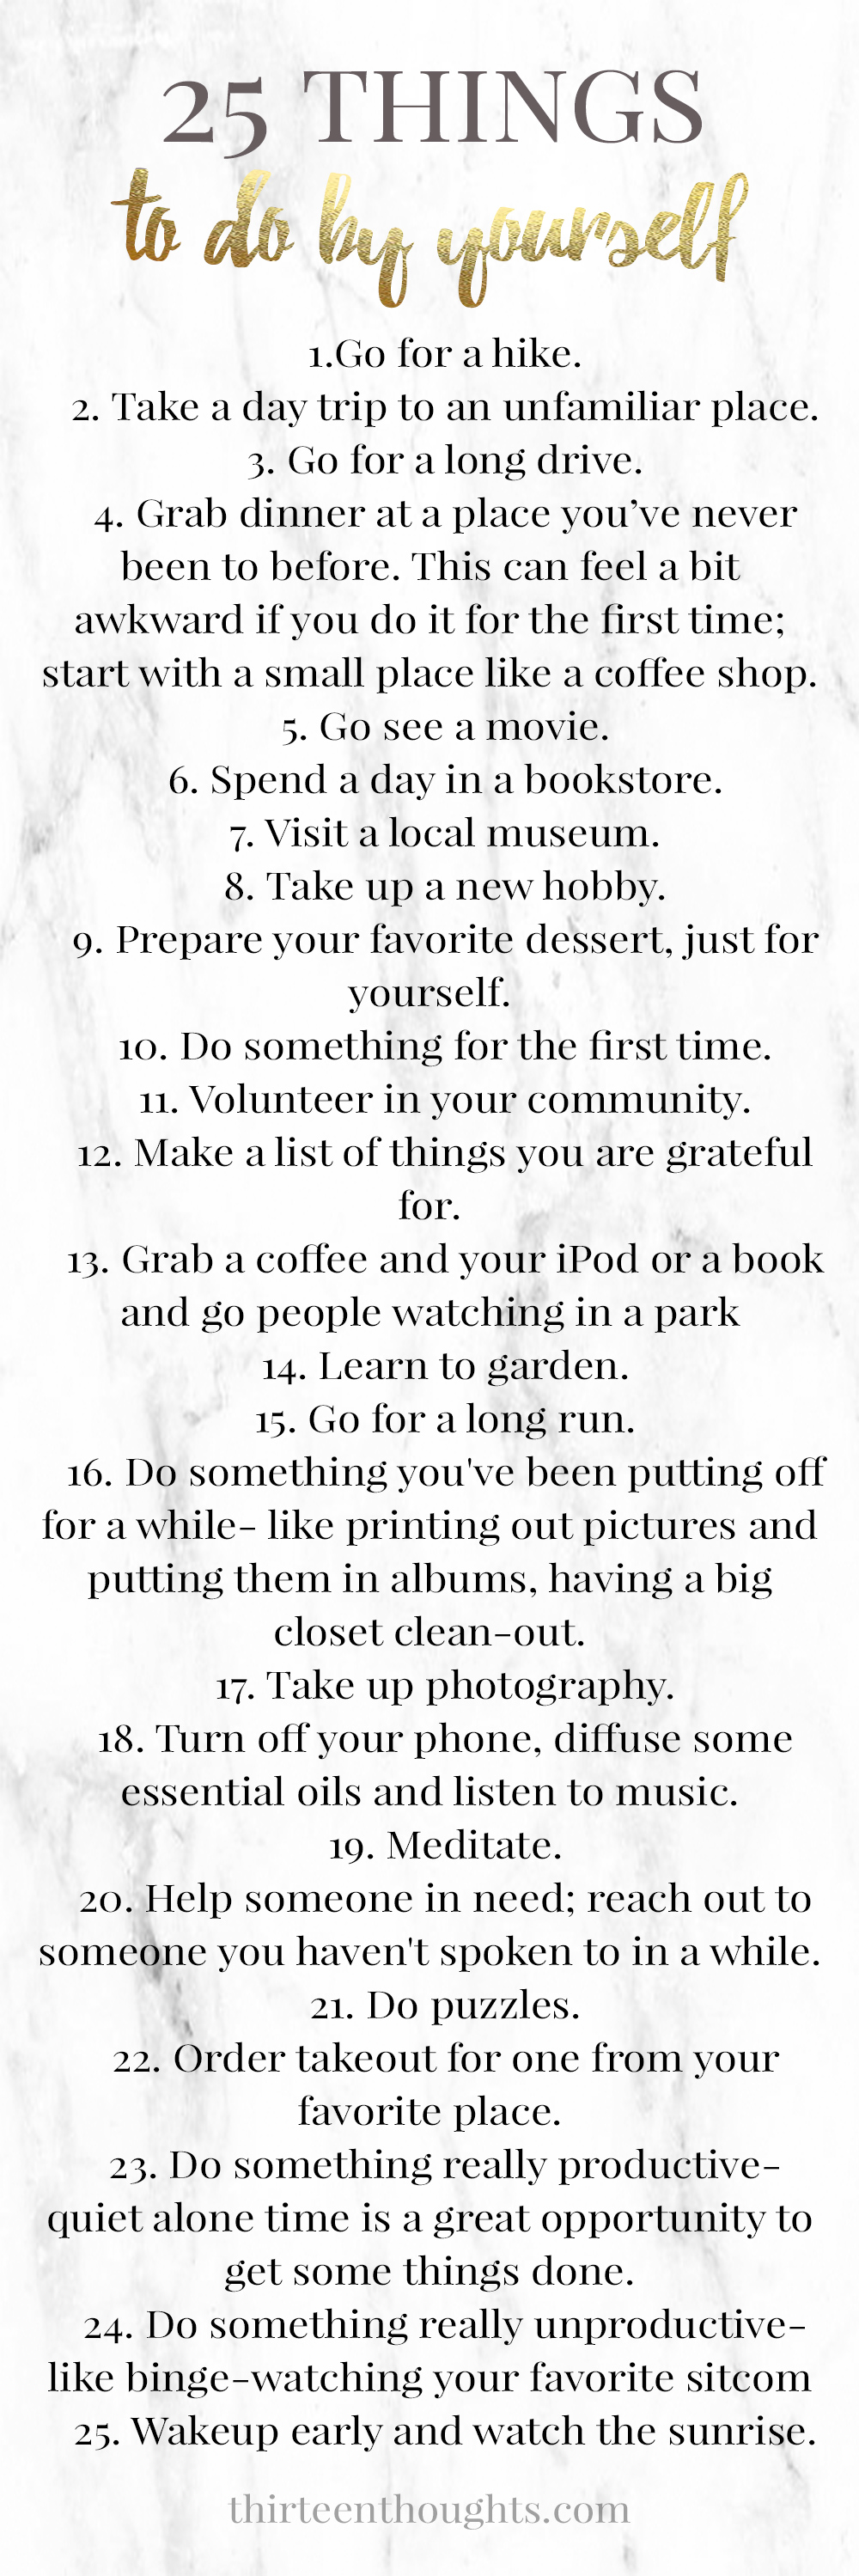 25 Things to do by yourself  printable list  THIRTEEN